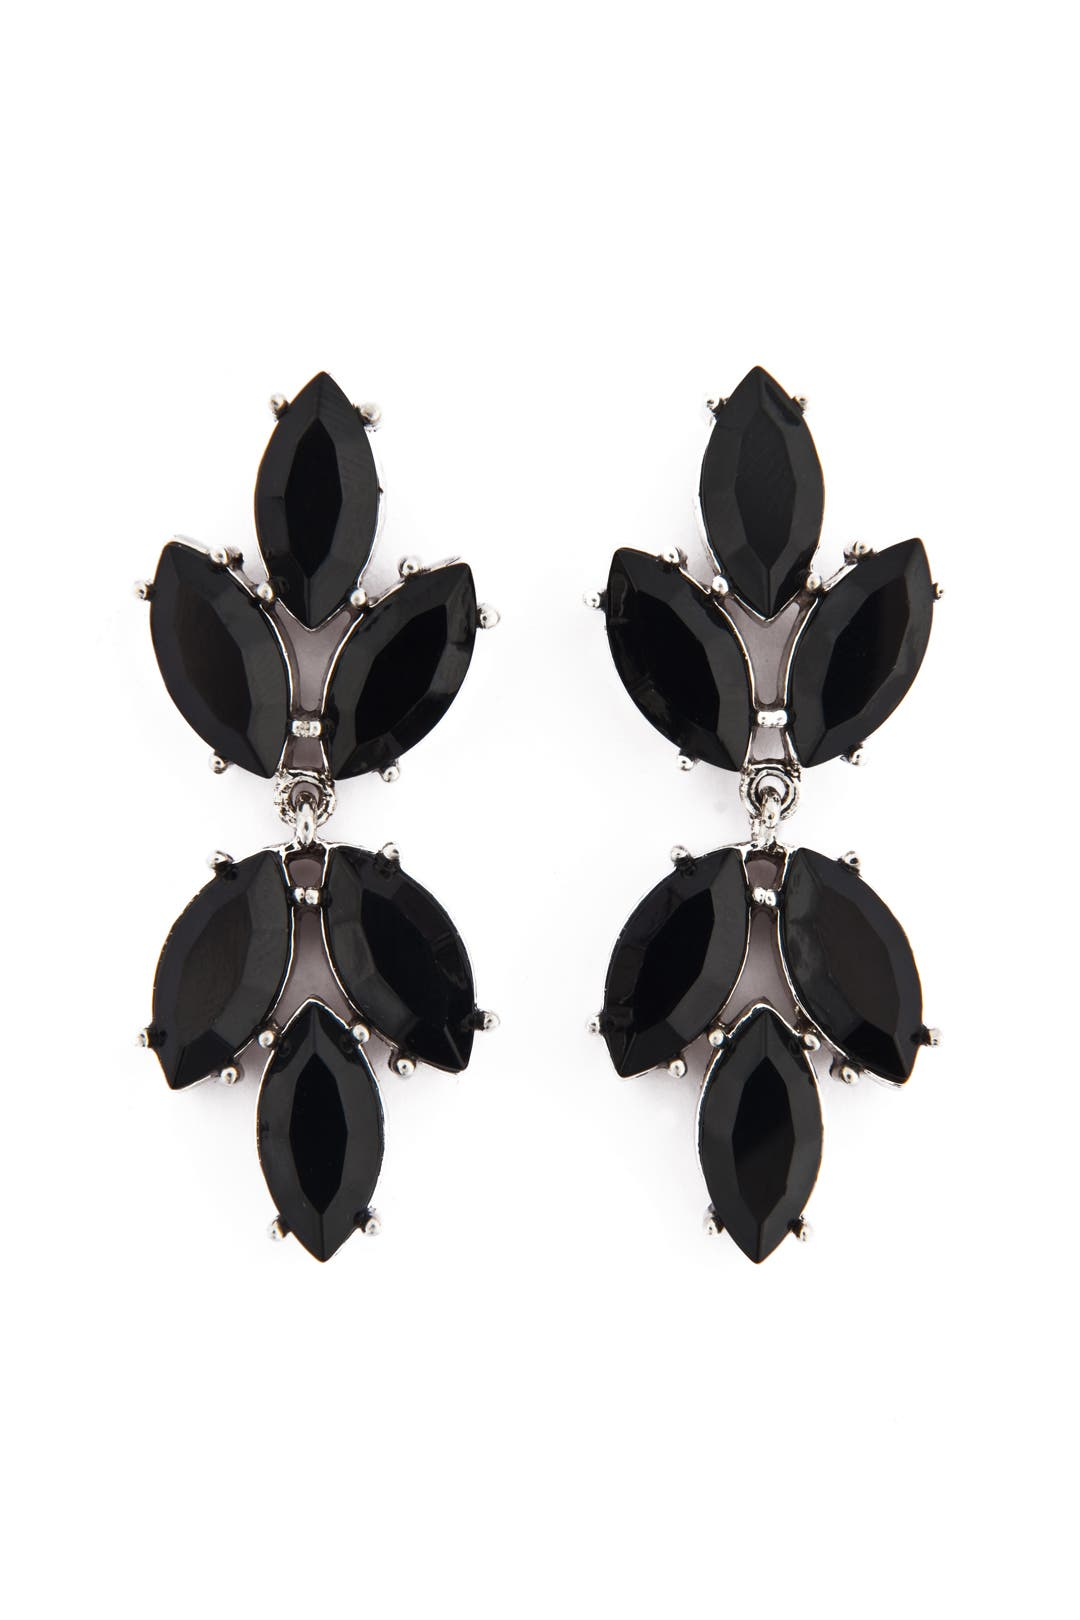 Black Spade Earrings by Badgley Mischka Jewelry